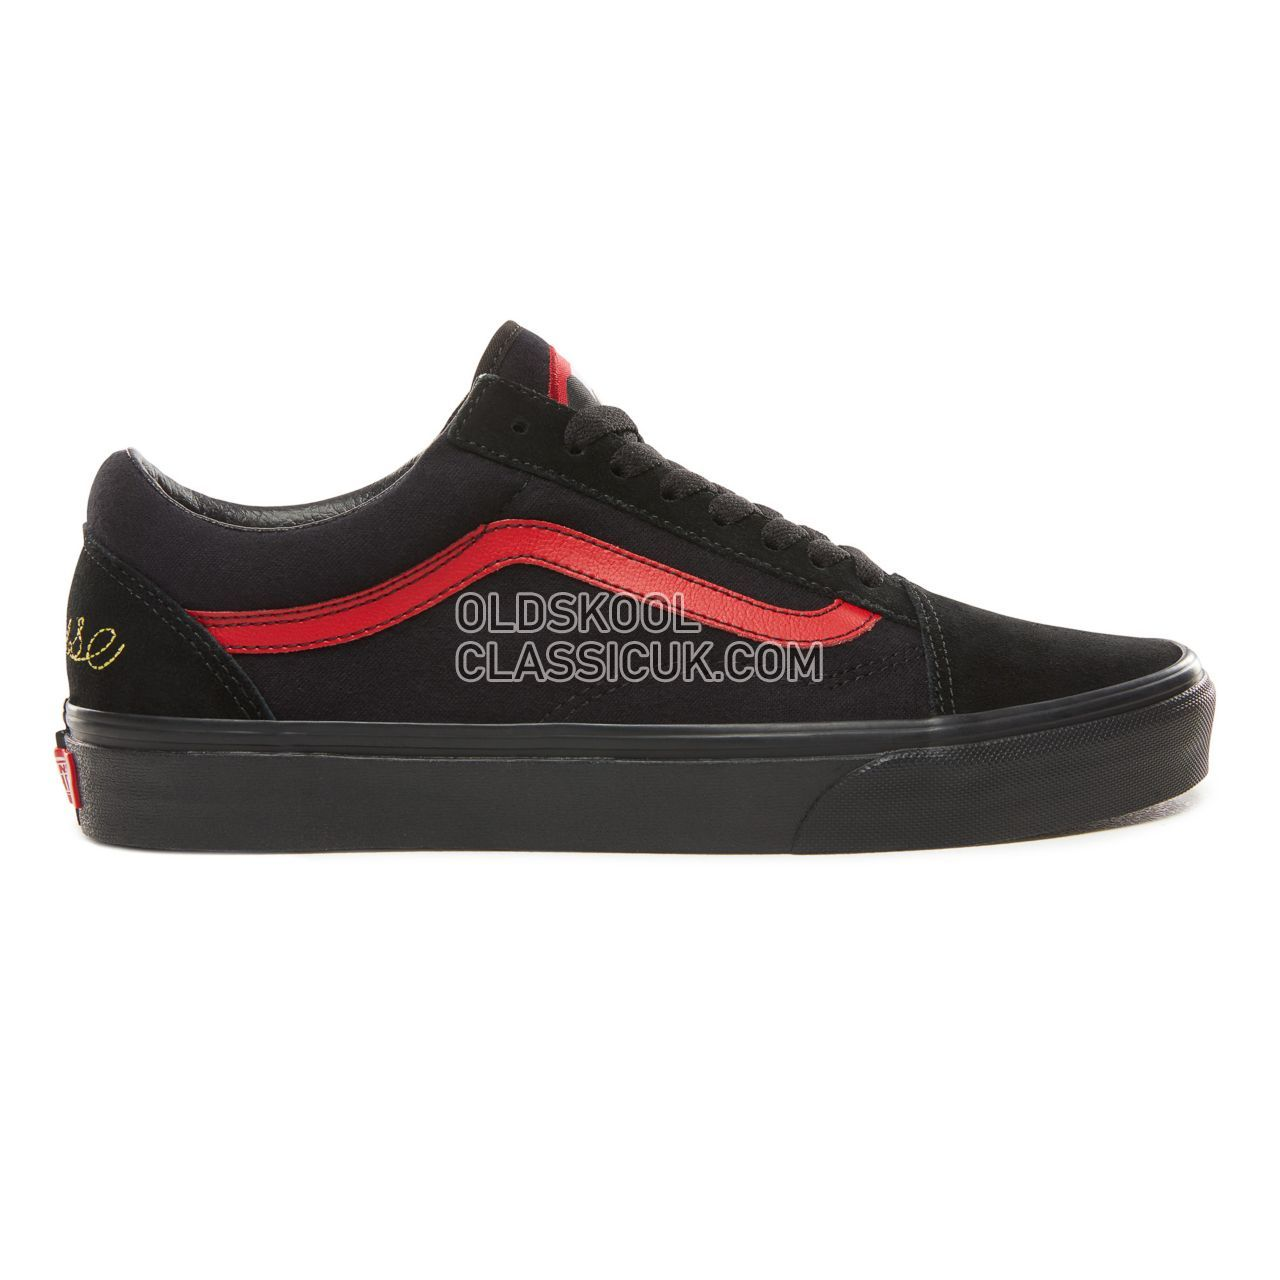 Vans Disney x Vans Old Skool Sneakers Mens Womens Unisex (Disney) Mickey Mouse Club/Black VN0A38G1UNB Shoes